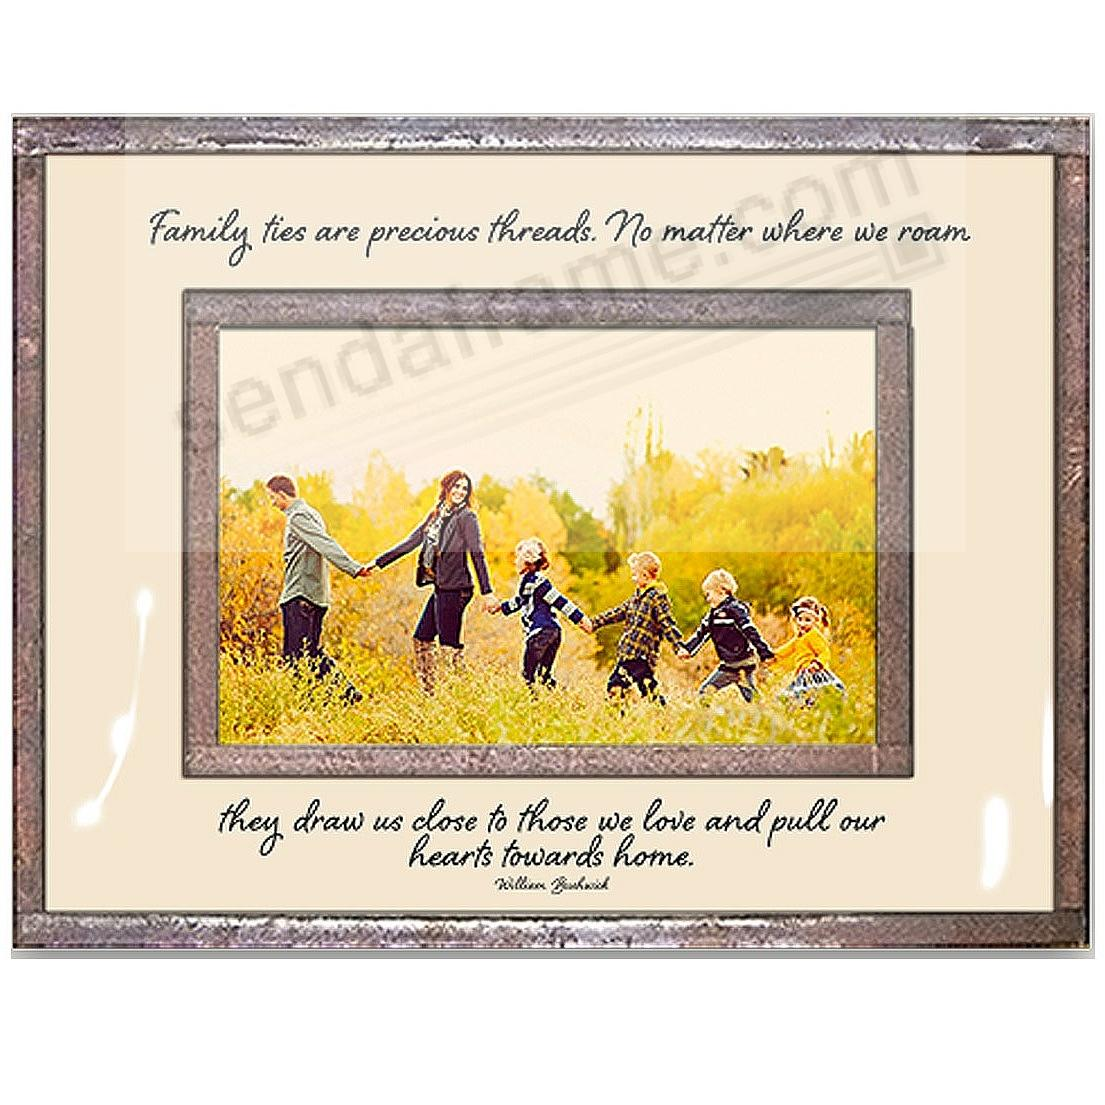 FAMILY TIES ARE PRECIOUS THREADS... Copper + Clear Glass by Ben's Garden®